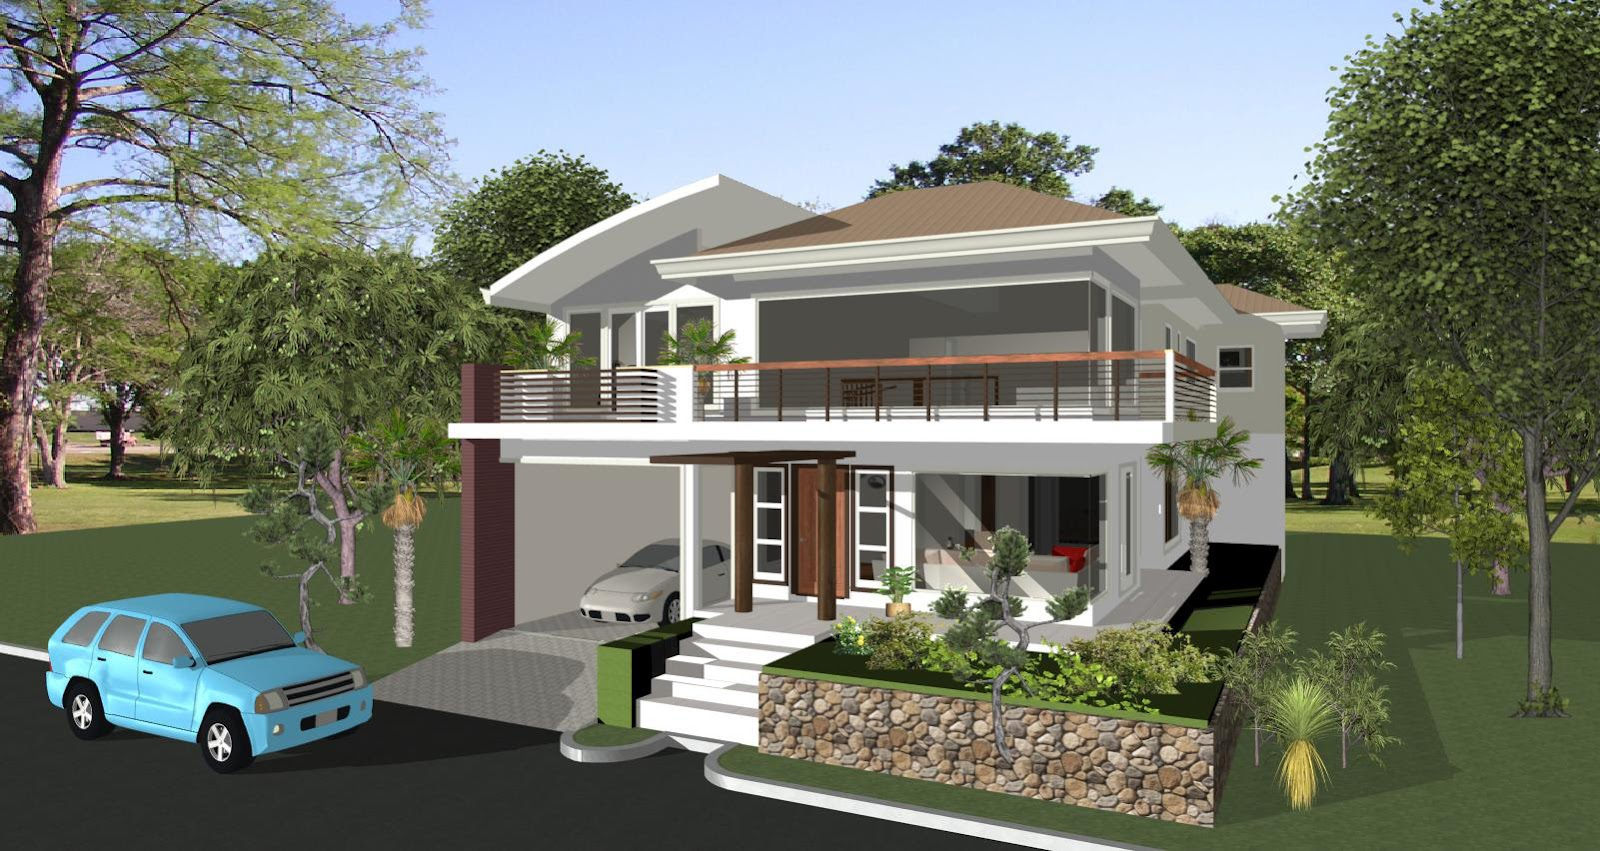 Home designs in philippines